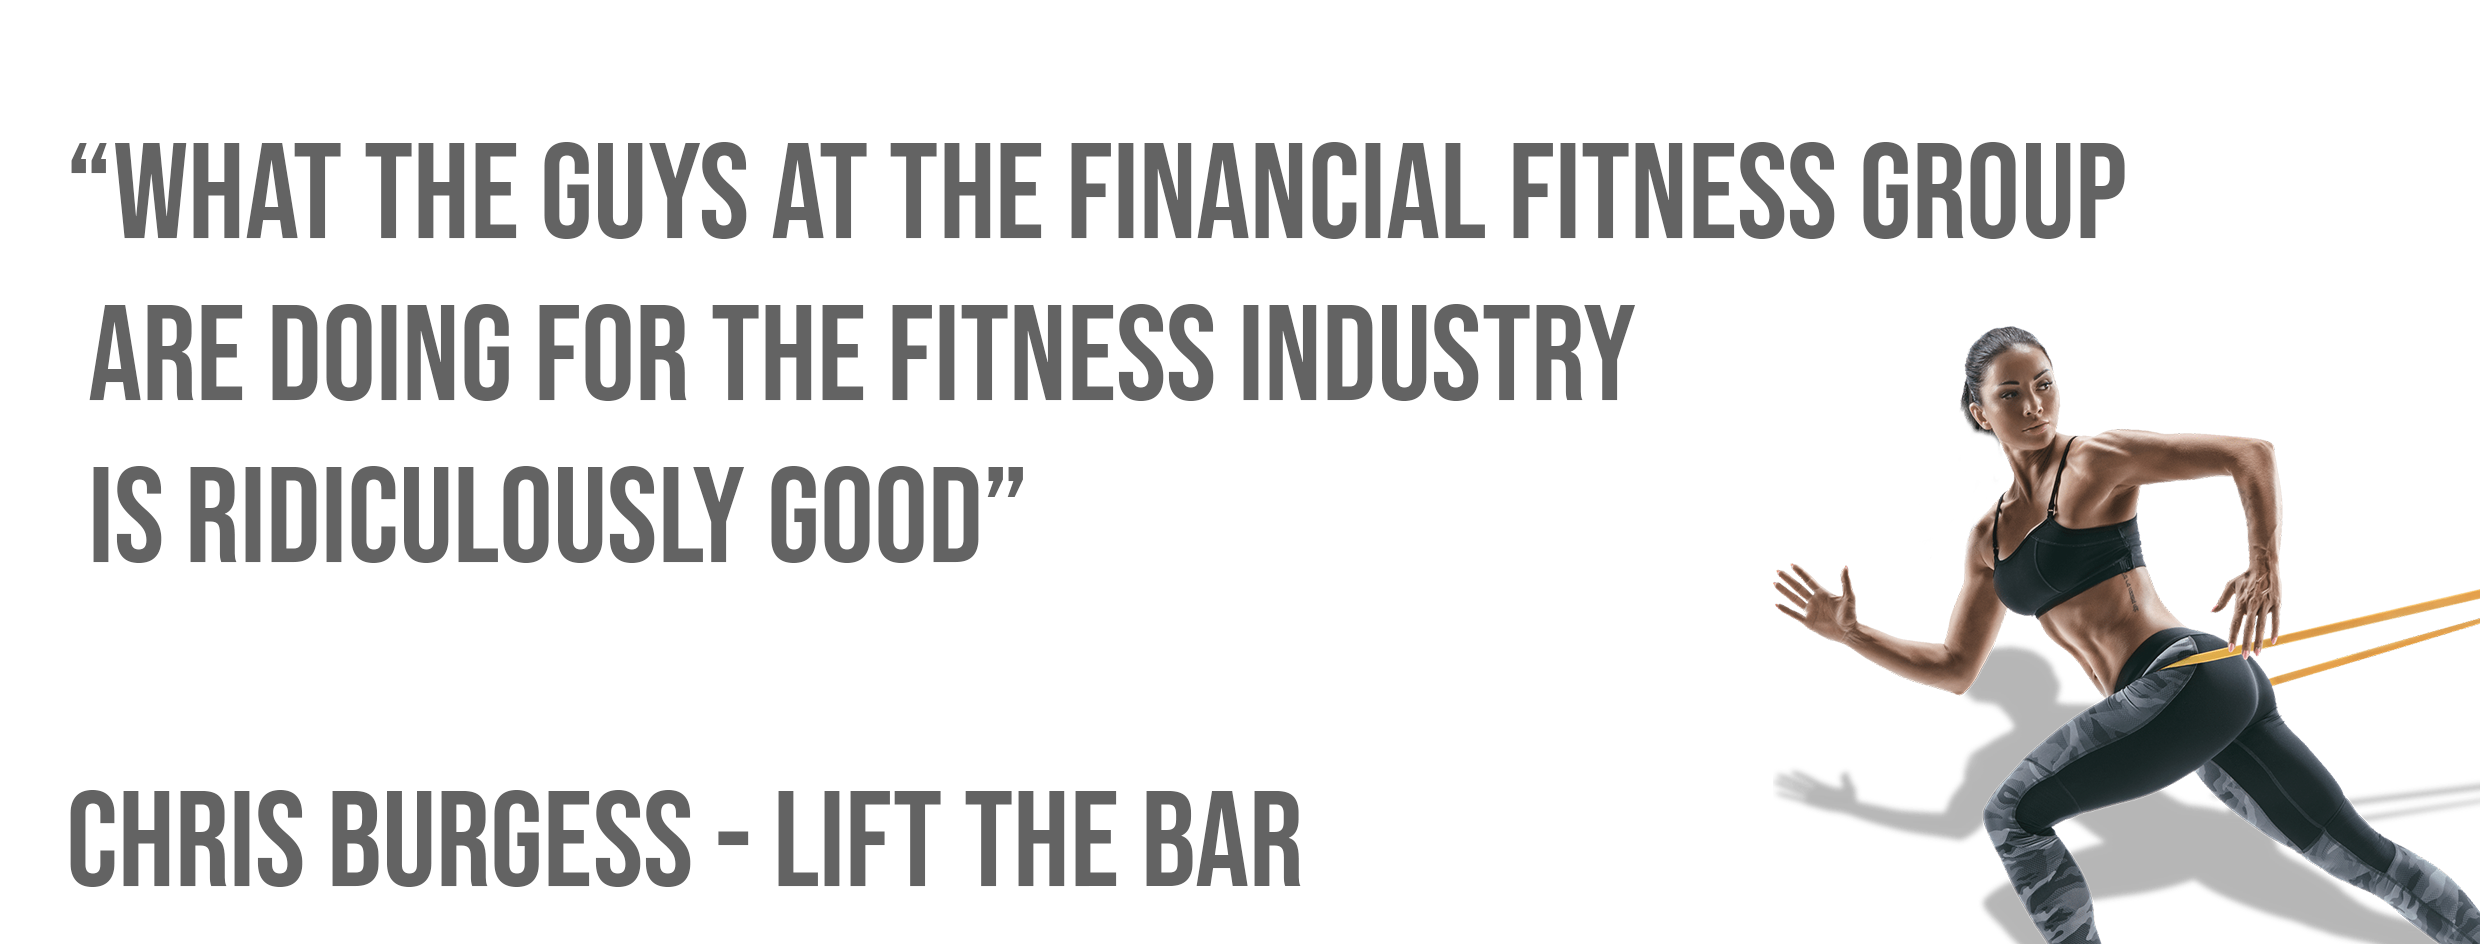 Lift The Bar Testimonial for The Financial Fitness Group